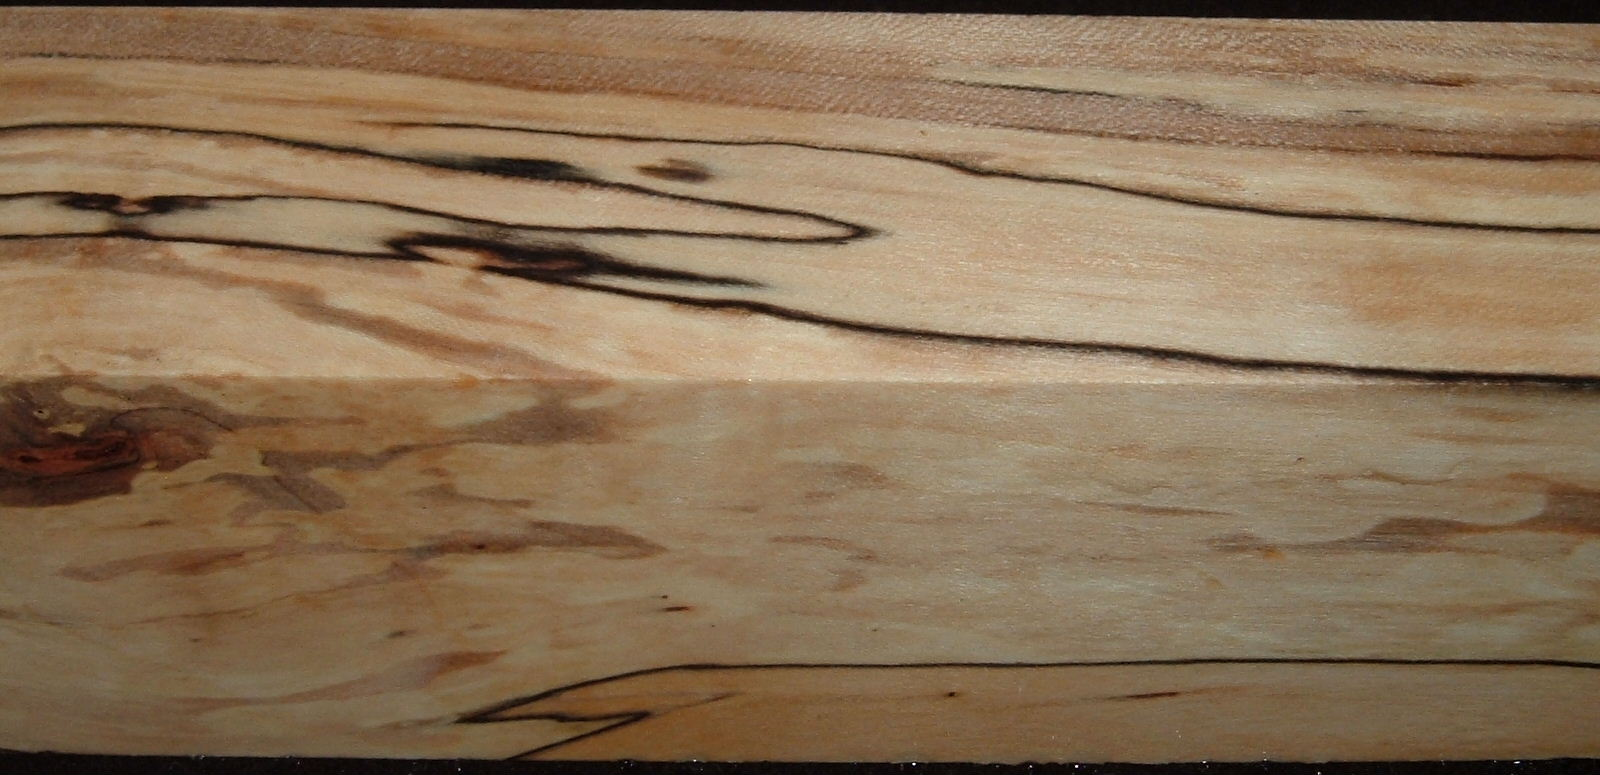 Z326, 1-5/8x1-5/8x7-1/4 ,Clear, Spalted Maple Dyed Stabilized, wood turning block